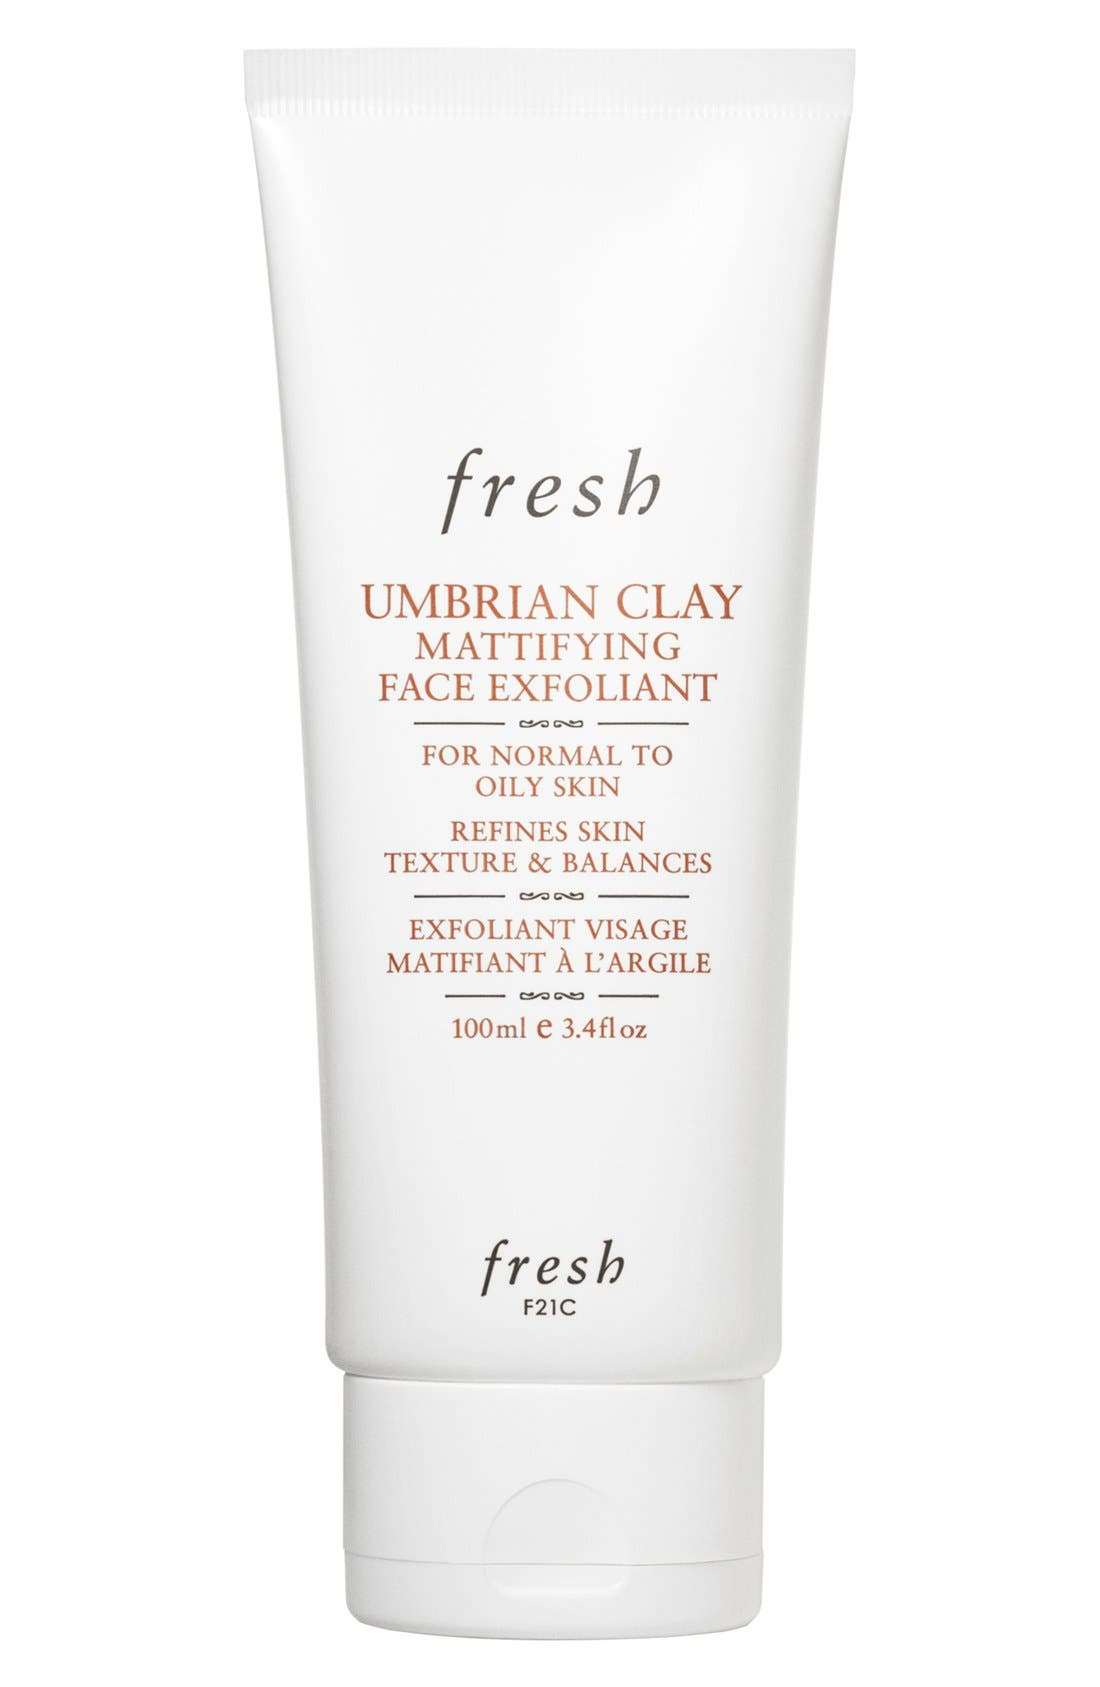 Fresh® Umbrian Clay Mattifying Face Exfoliant